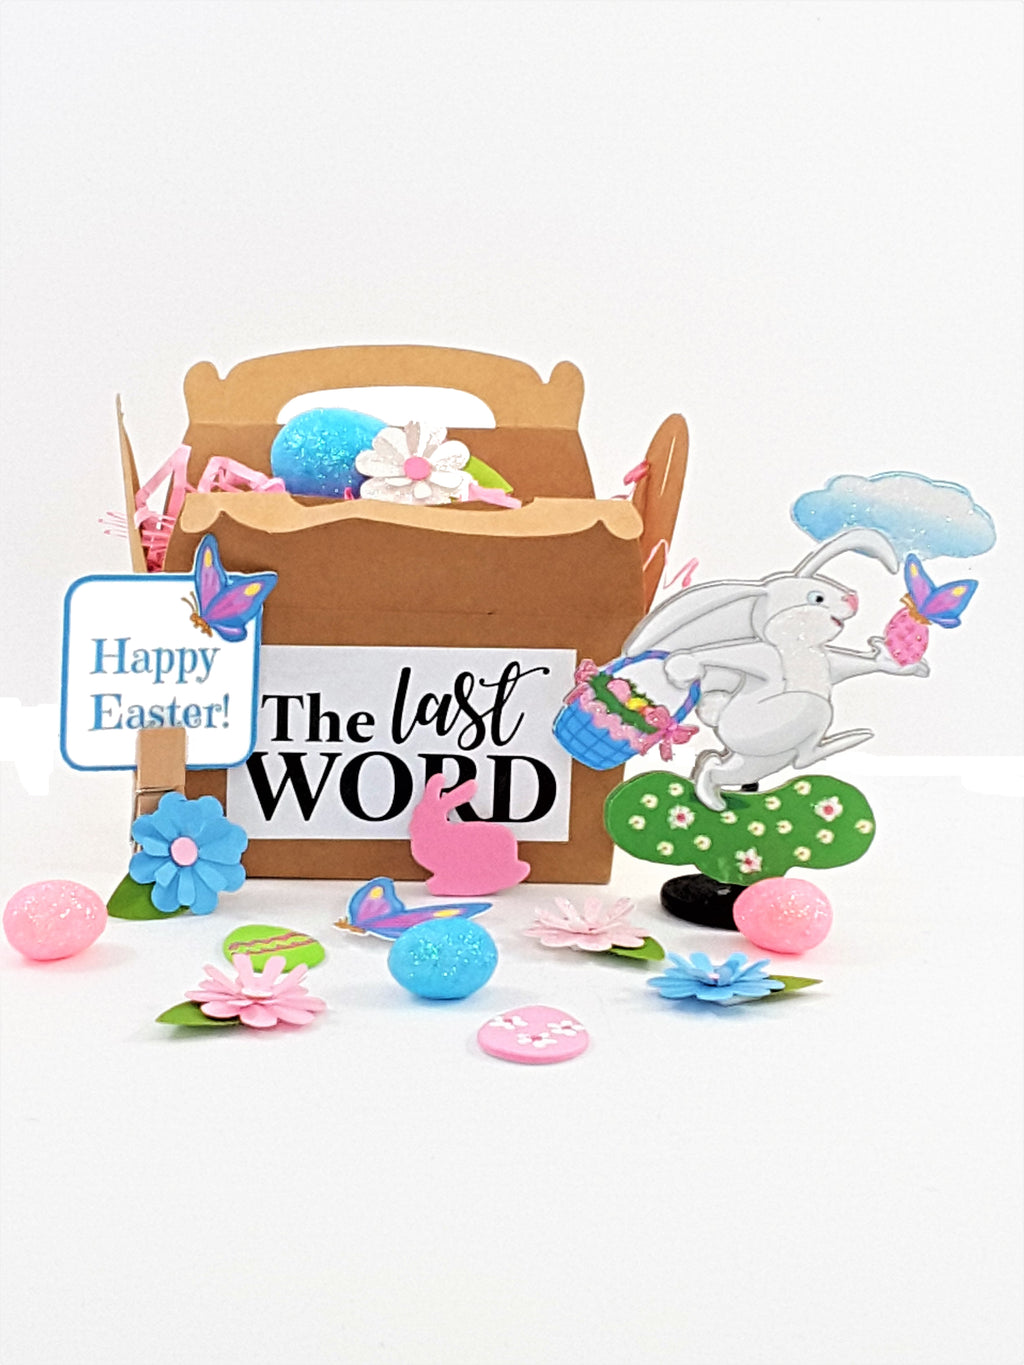 Skipping Bunny Rabbit 3D Easter Card - includes candy & other goodies! - TheLastWordBish.com